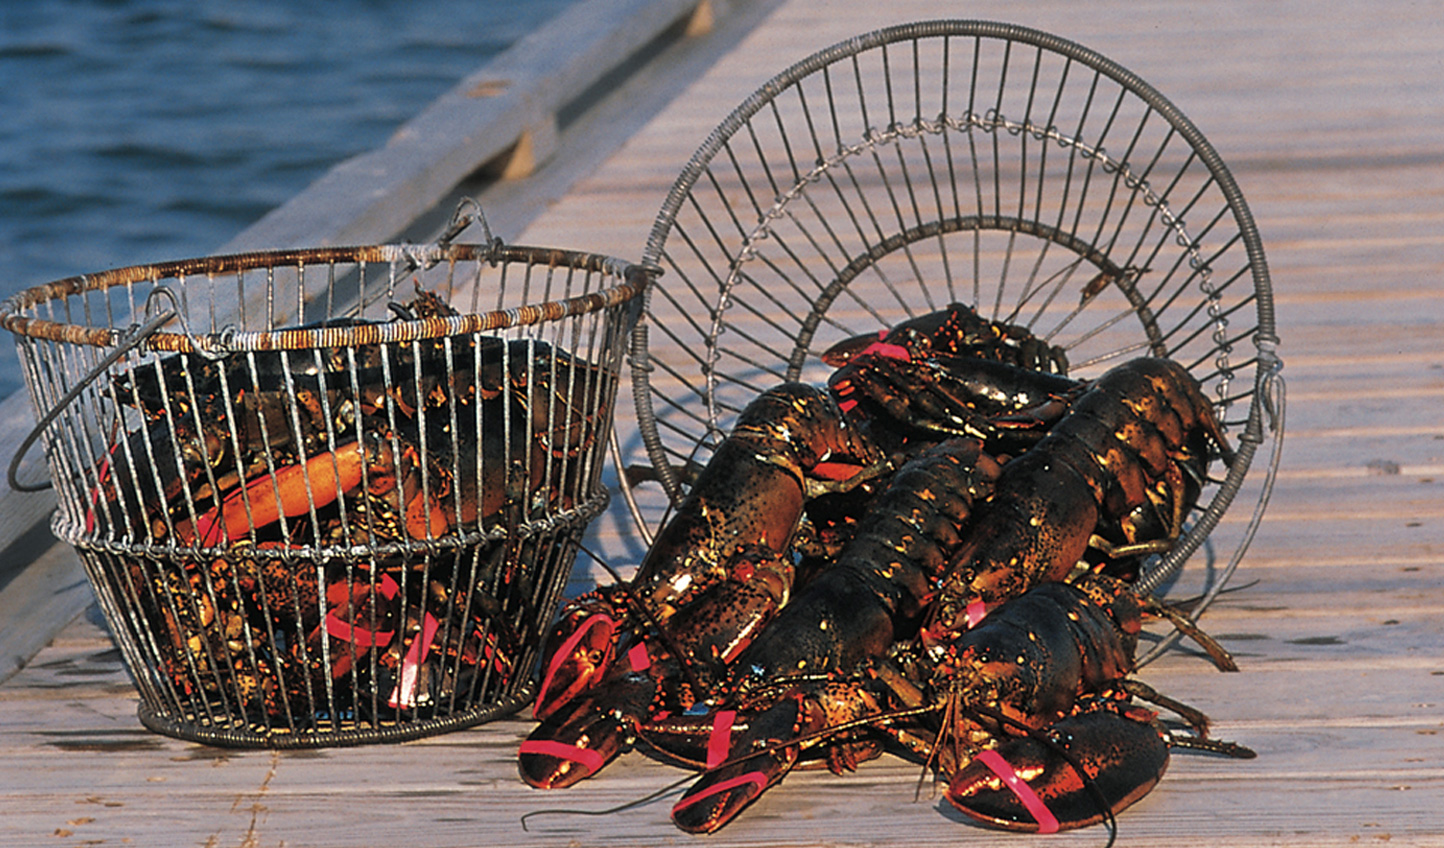 Join Captain Rob on the Wauwinet Lady for an afternoon of lobster hauling